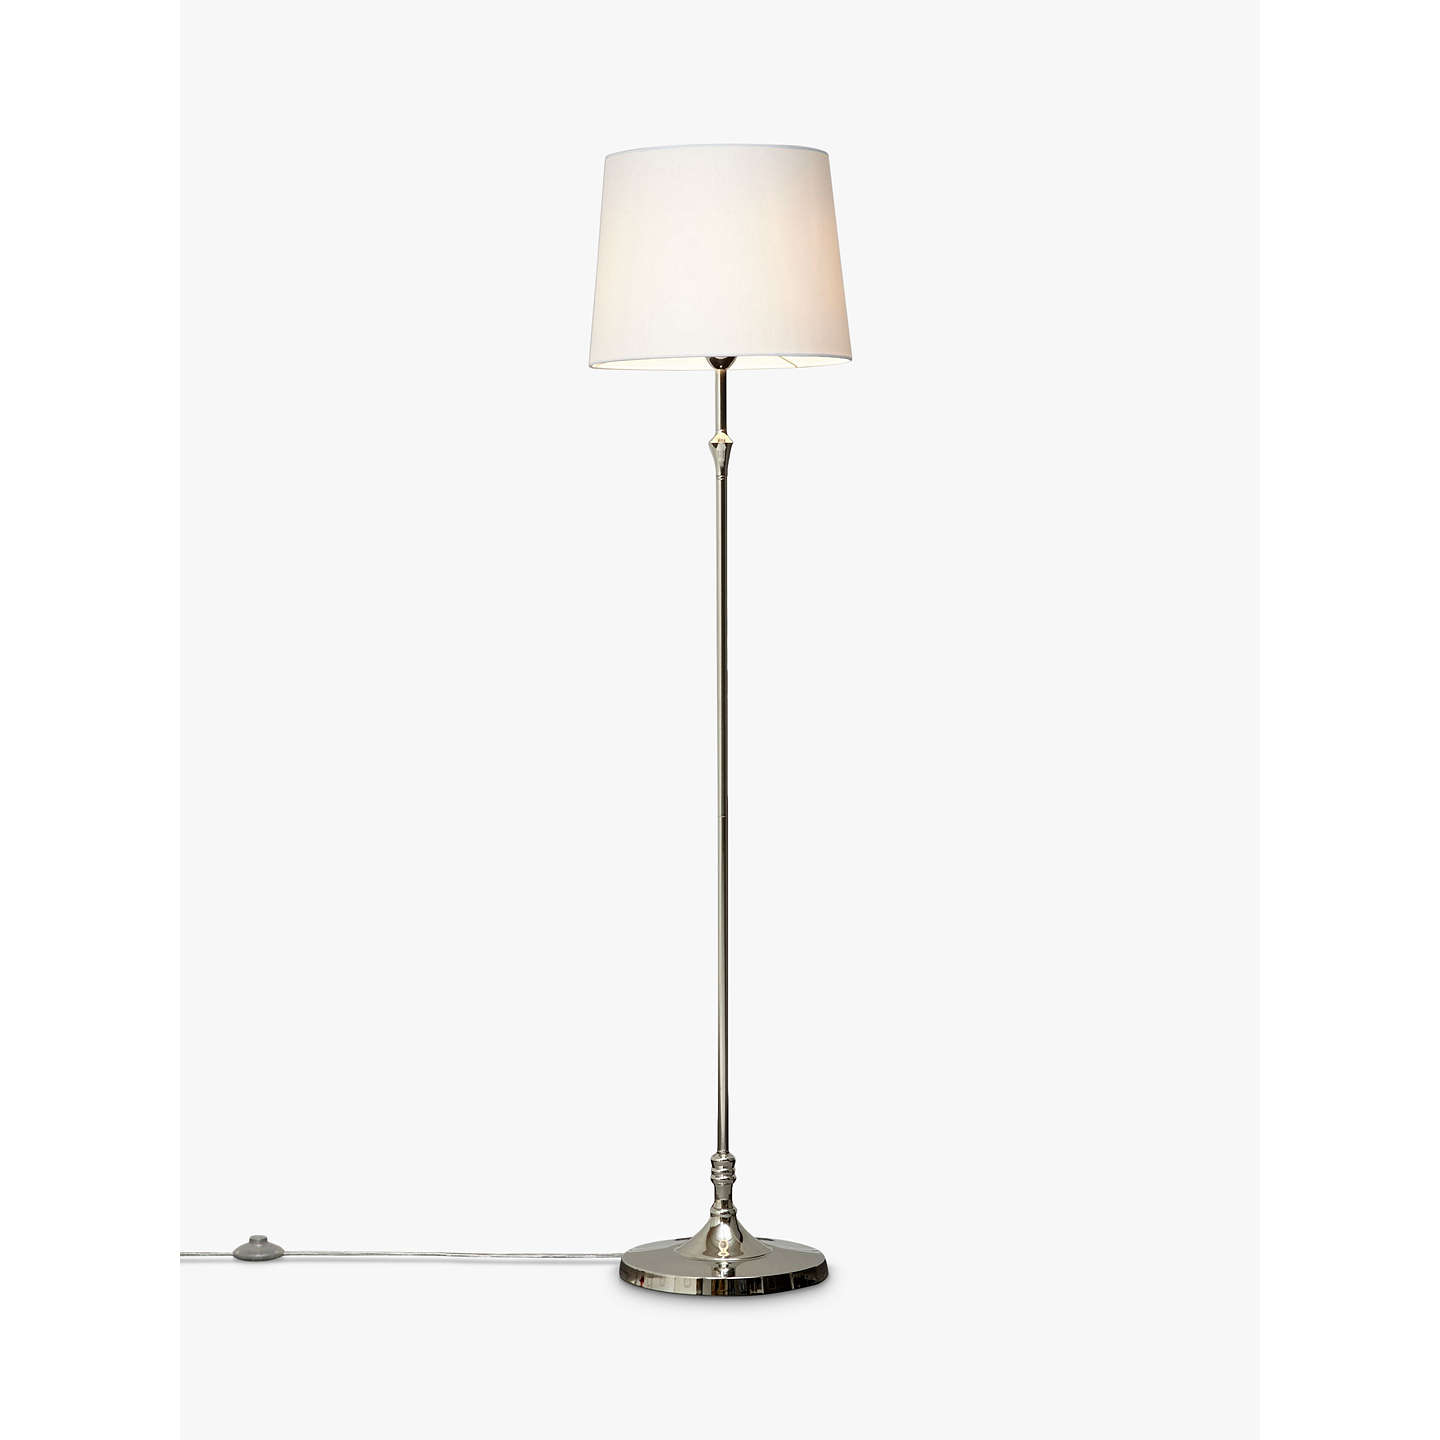 John lewis cleo floor lamps nickel at john lewis buyjohn lewis cleo floor lamps nickel online at johnlewis mozeypictures